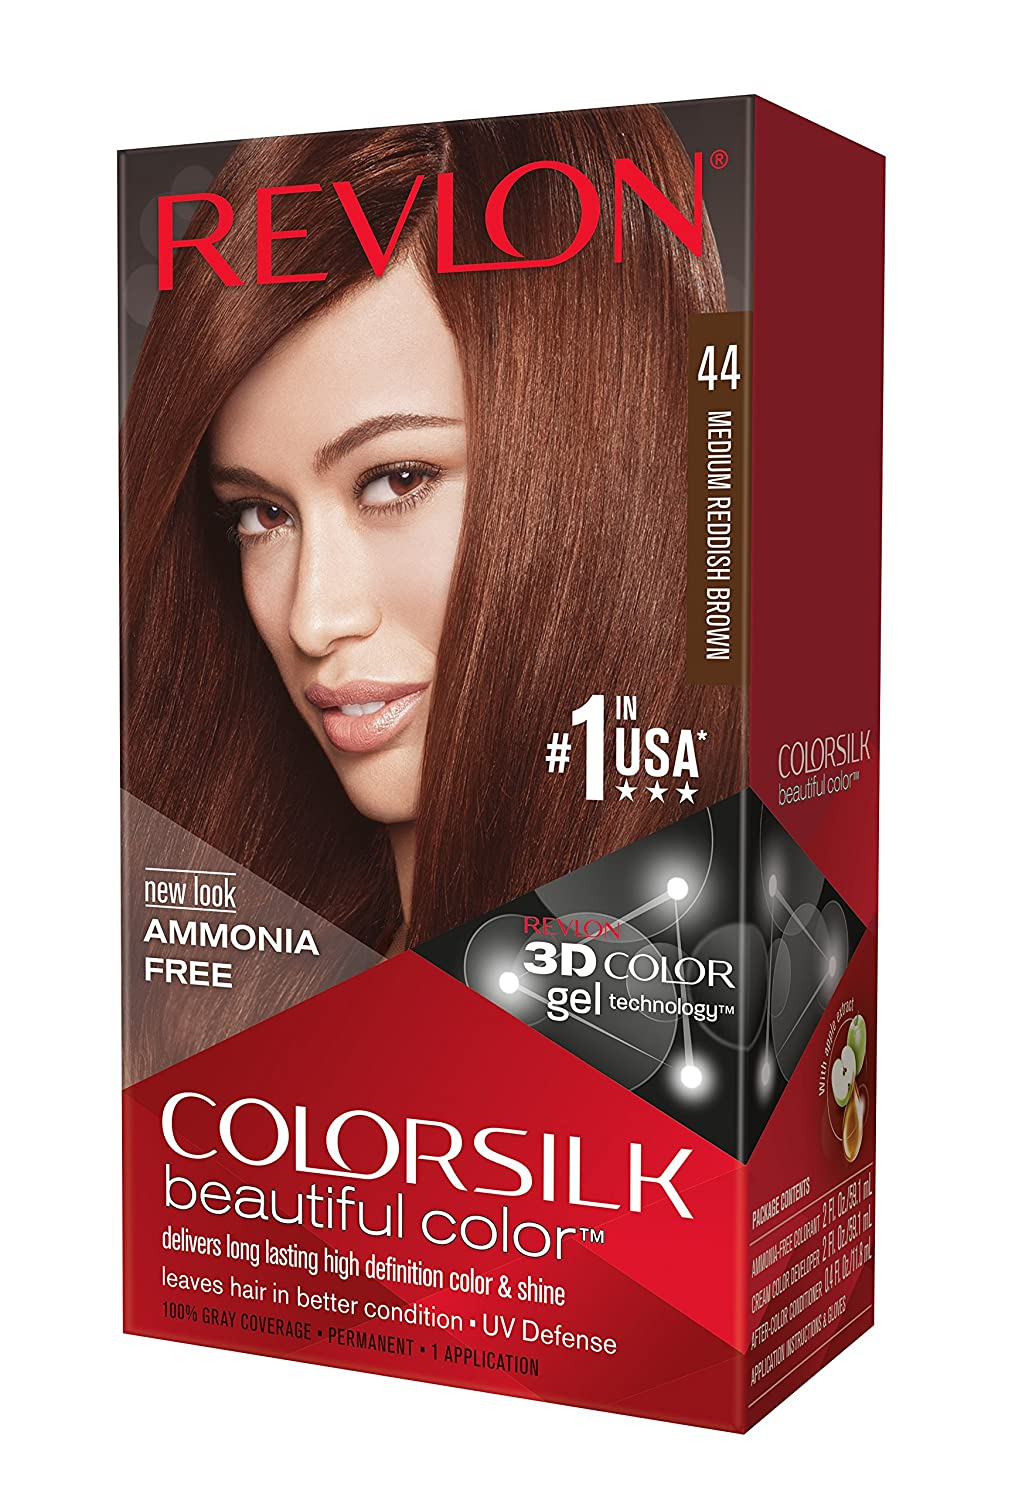 Revlon ColorSilk Haircolor, Medium Reddish Brown